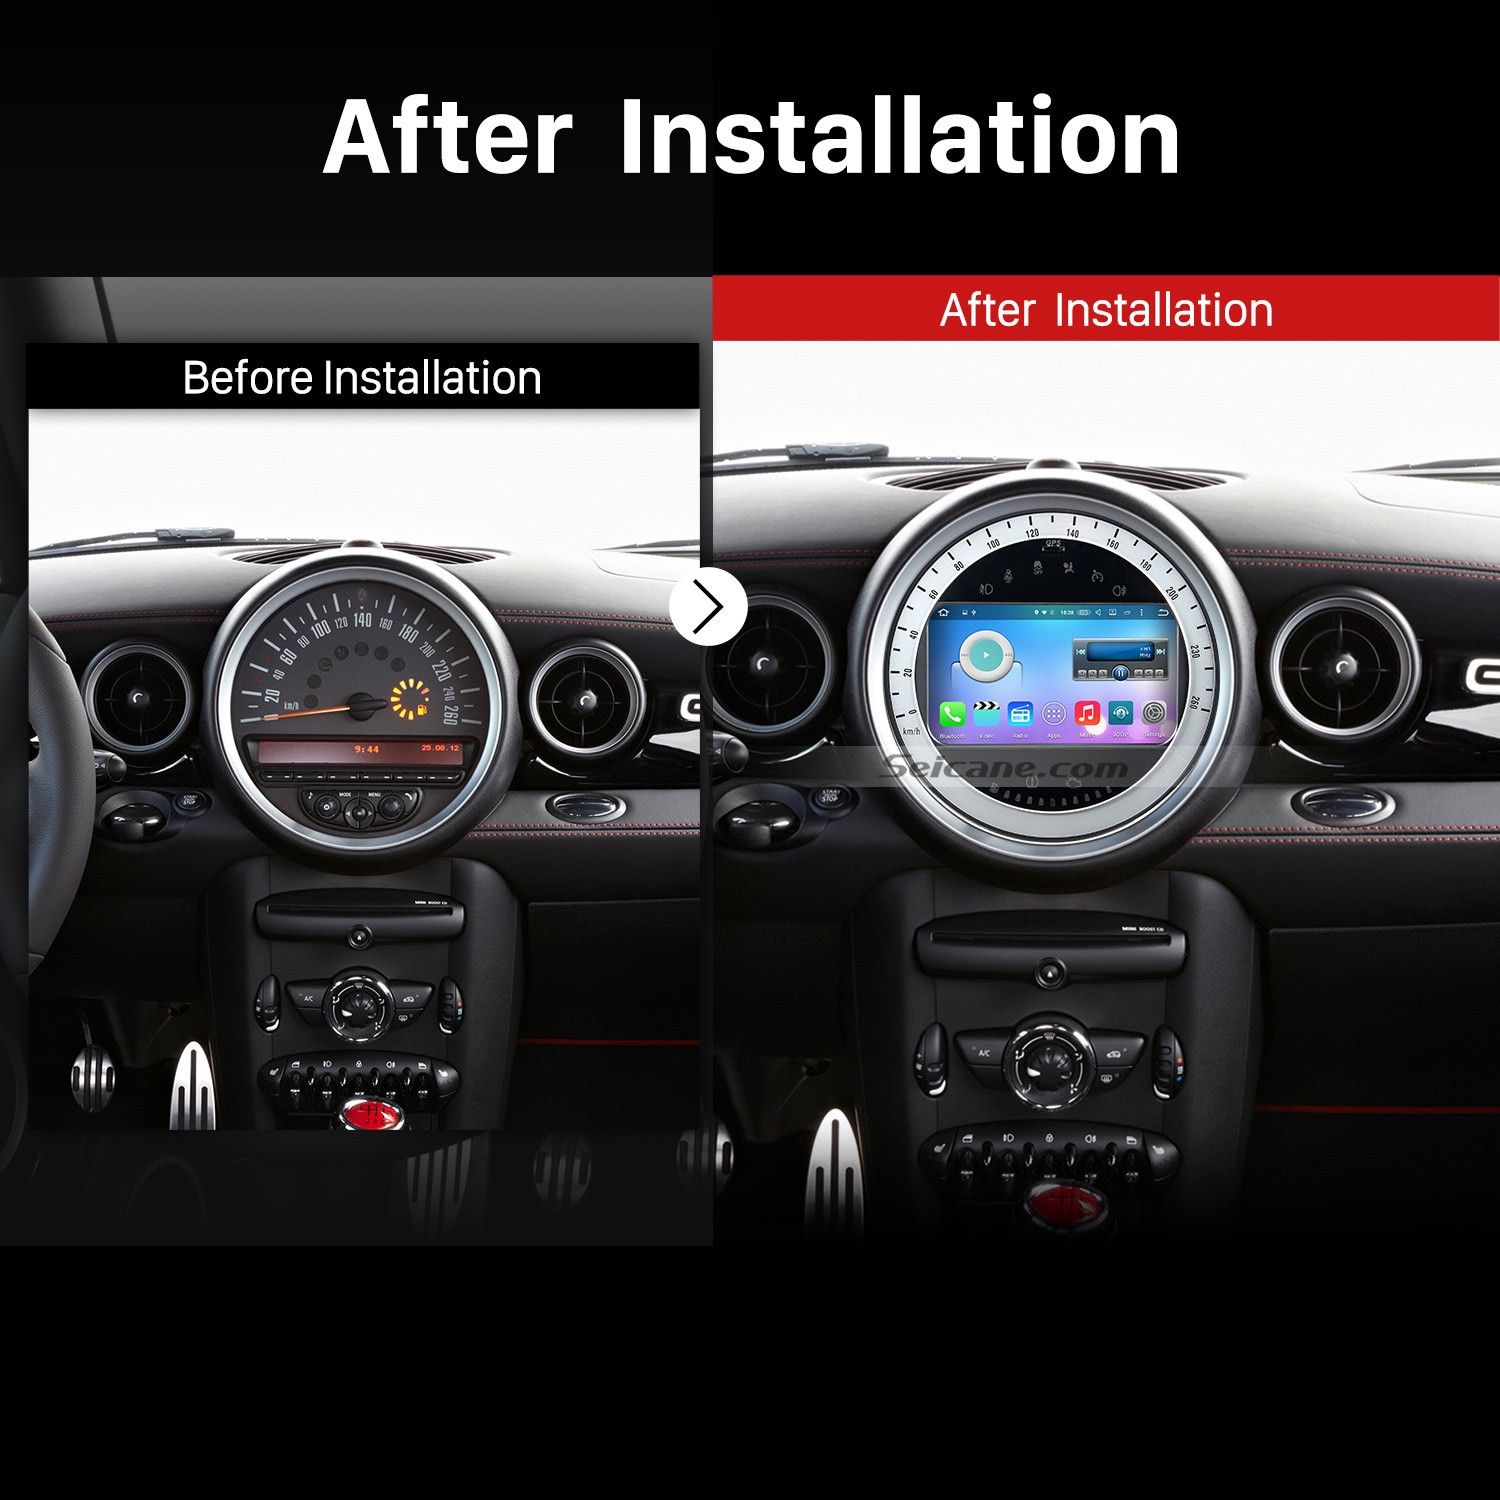 2006 2013 bmw mini cooper gps bluetooth car stereo removal and rh seicane com Does Mini Cooper Manual Omly Have 2007 mini cooper radio manual pdf